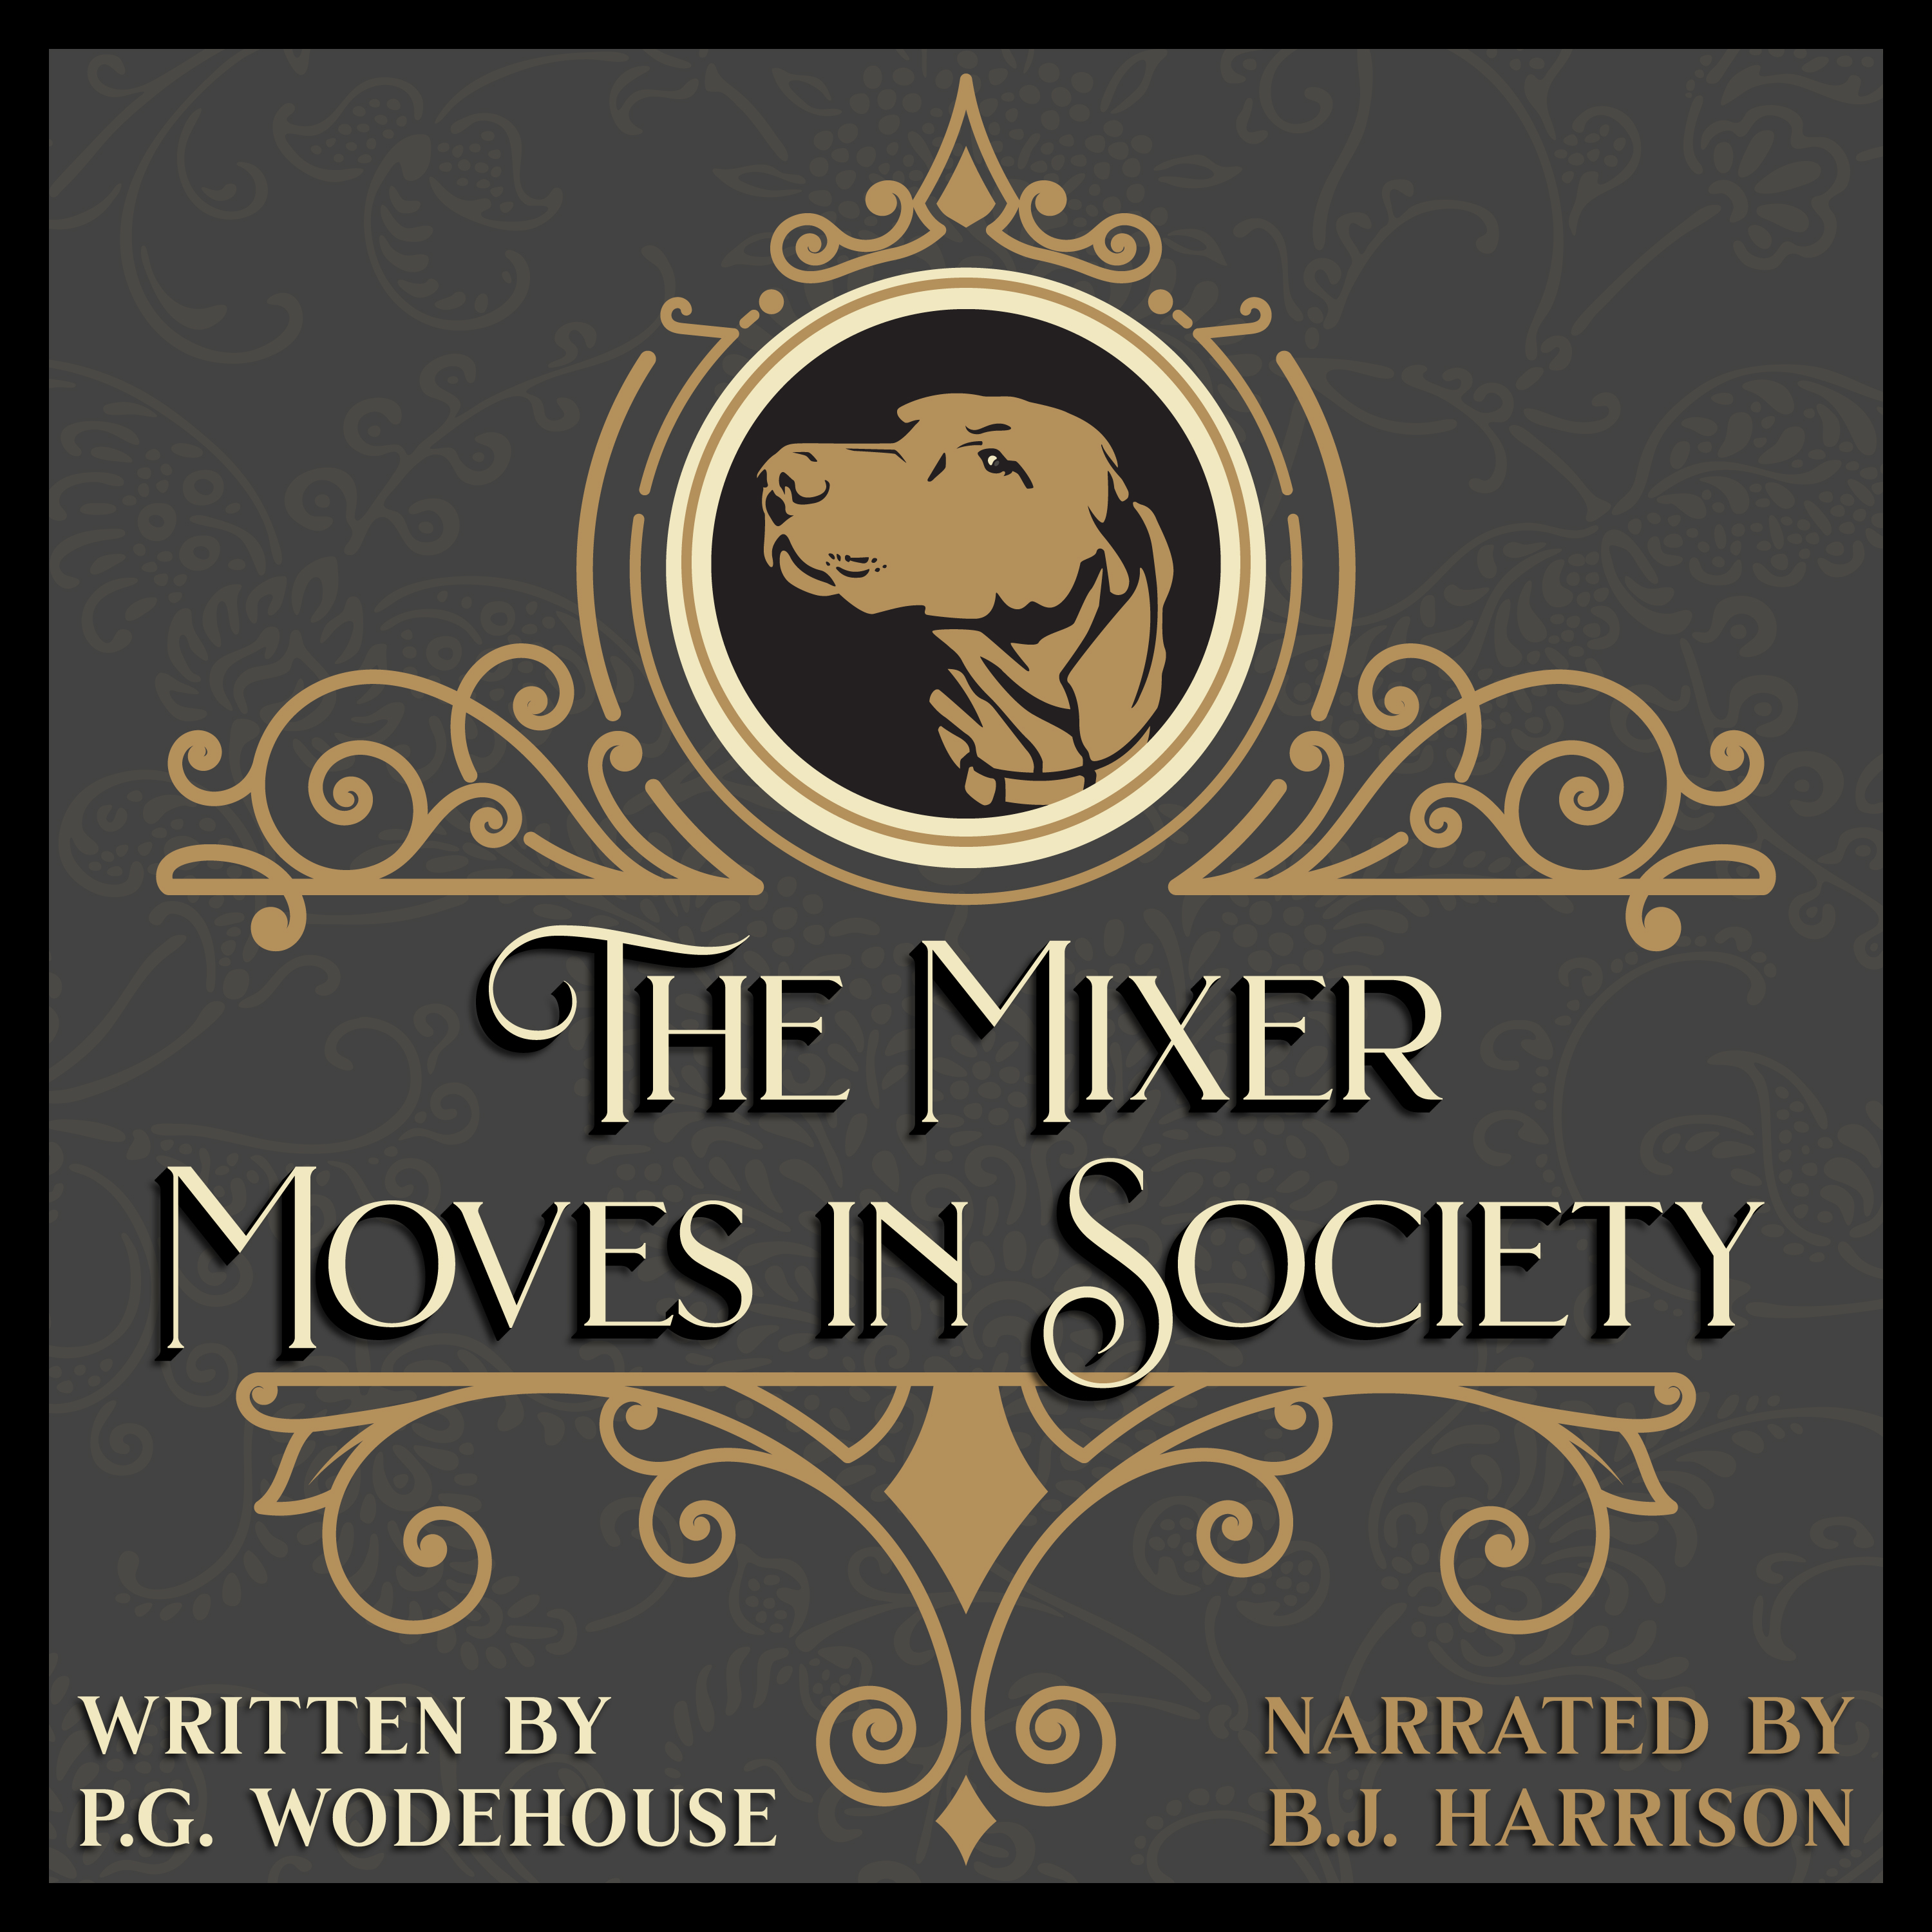 Ep. 727B, The Mixer Moves in Society, by P. G. Wodehouse-LEGACY